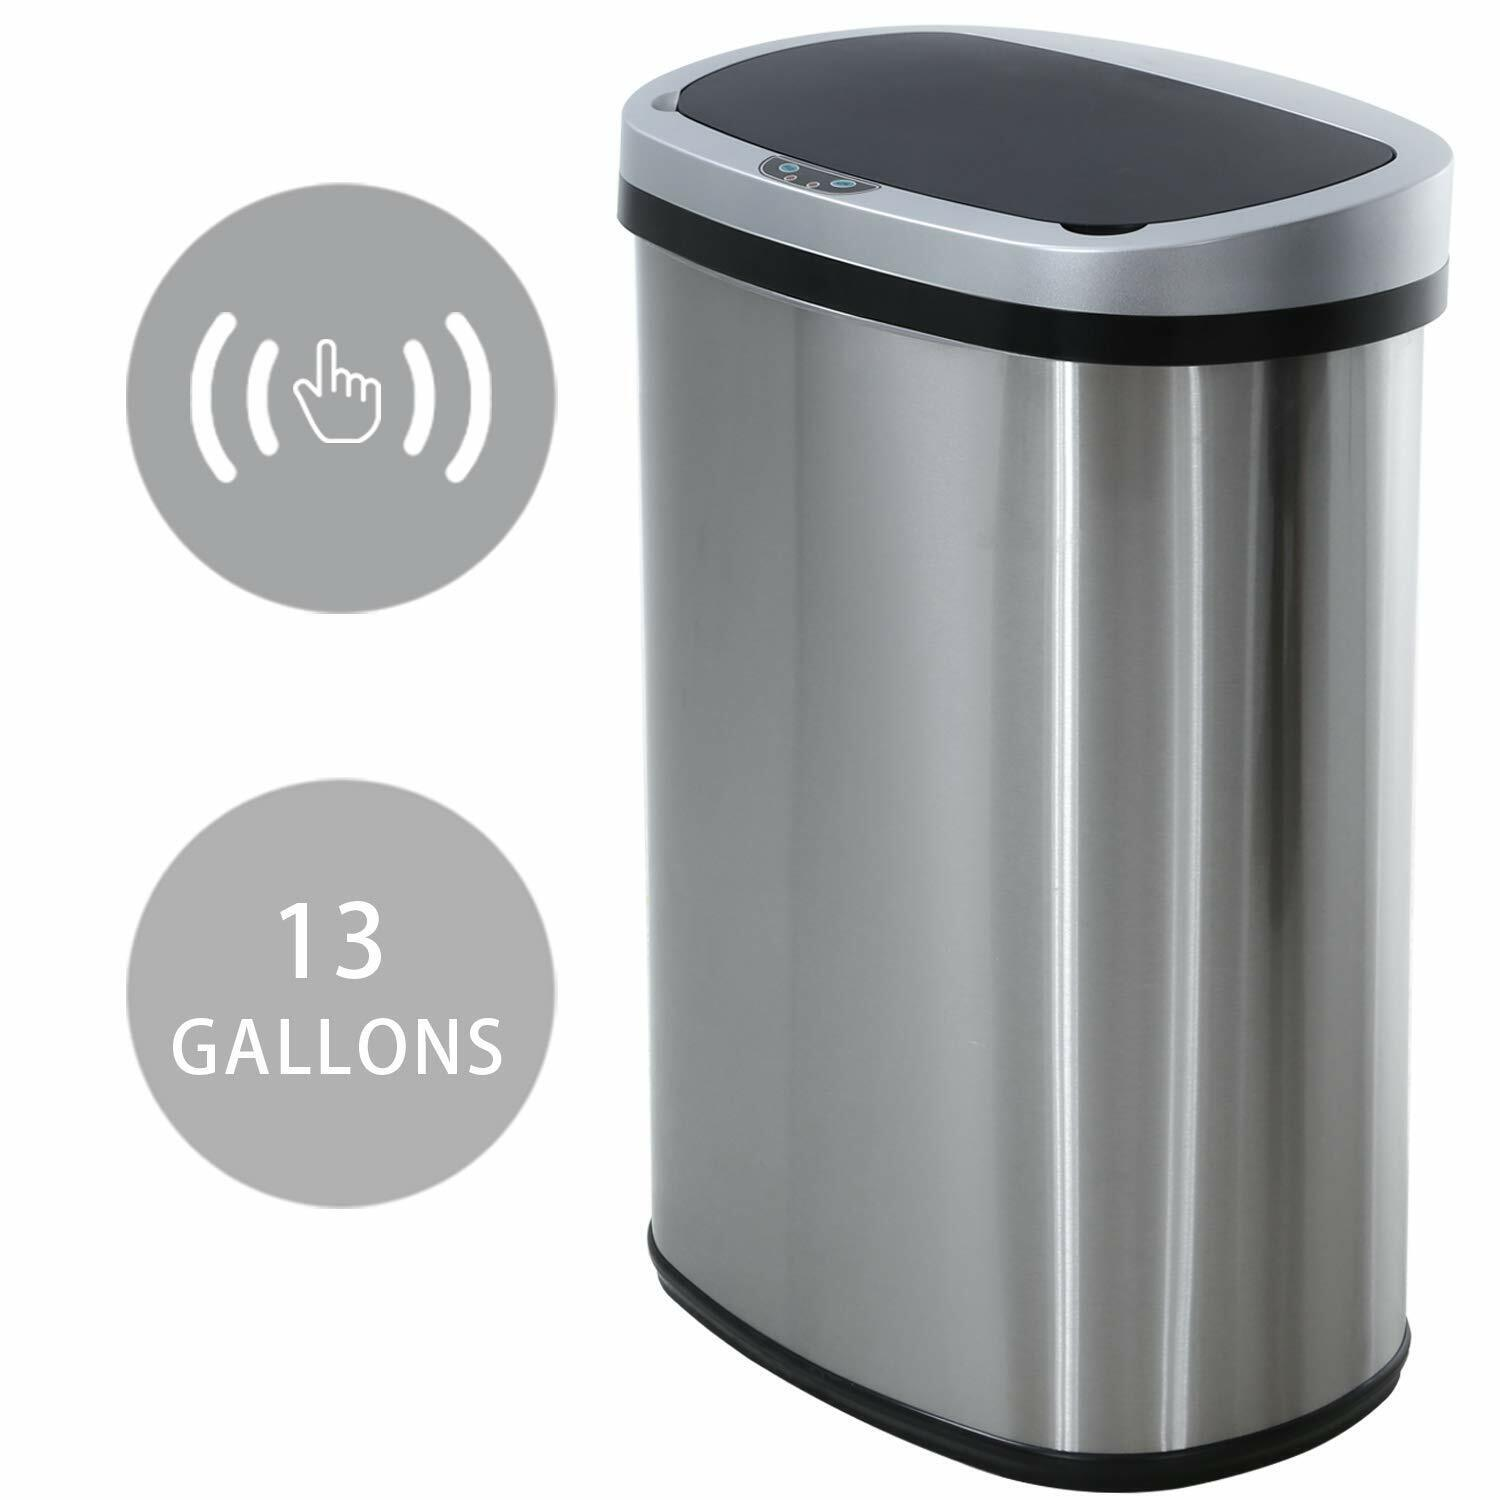 New 13-Gallon Touch Free Sensor Automatic Touchless Trash Can Kitchen Office General Household Supplies